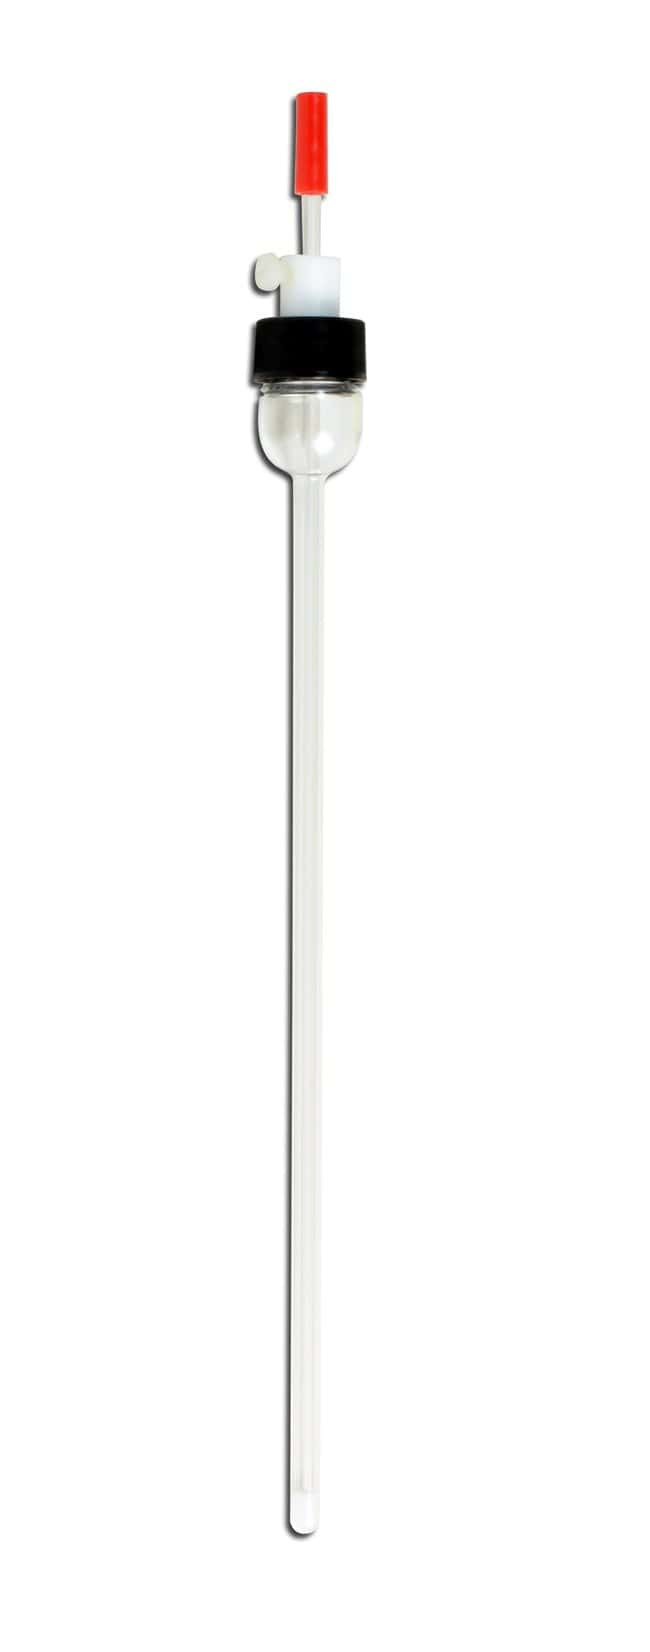 Wilmad-LabGlass 5mm OD Reaction Monitoring System NMR Tube:Test Tubes,